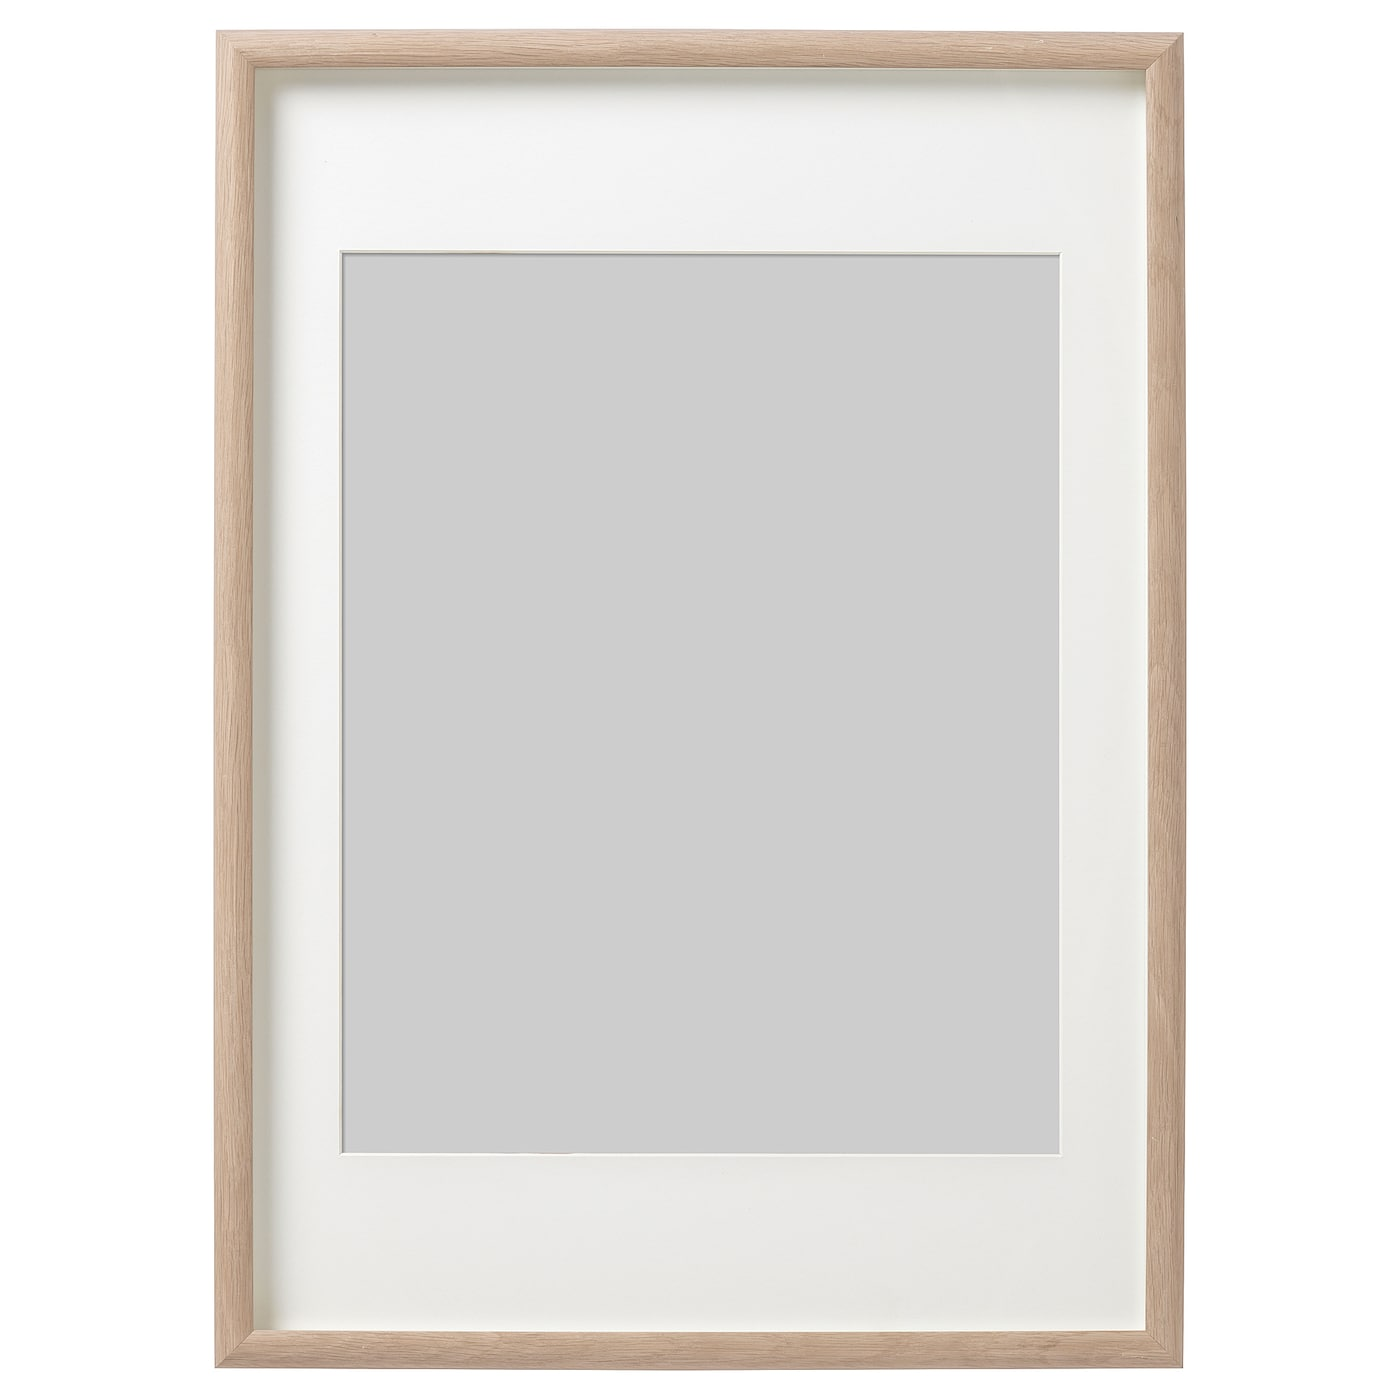 Wall Frames - Wall Photo Frames | IKEA